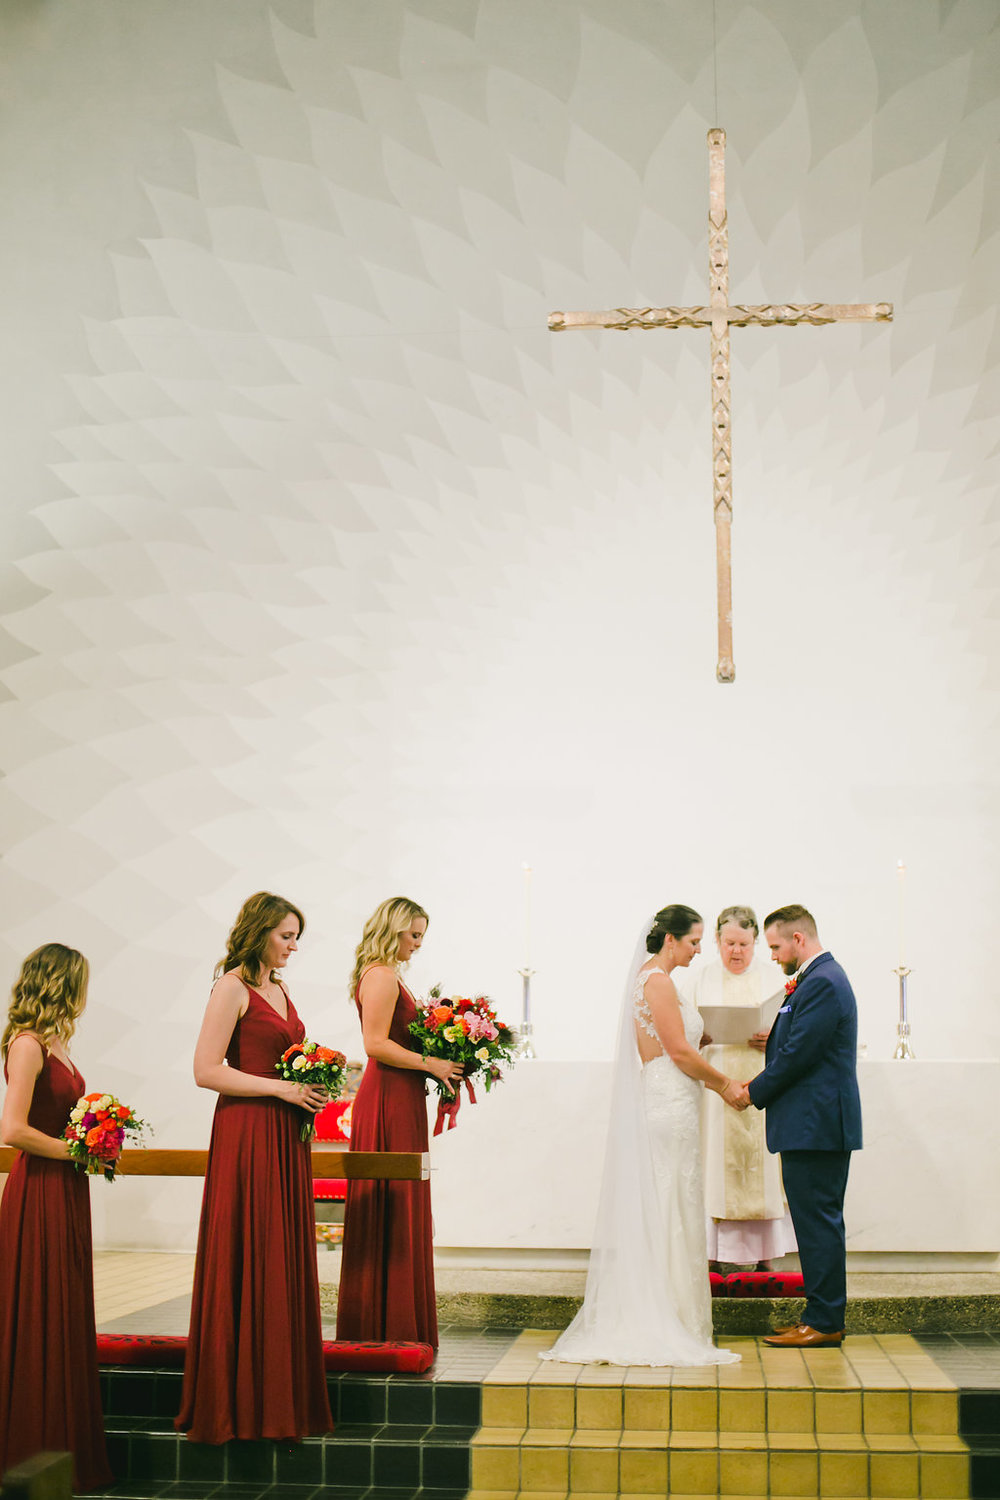 beautiful church wedding ceremony in july with bride in lace dress and wearing soft glowing naturally glamorous makeup by kim baker beauty san jose california makeup artist